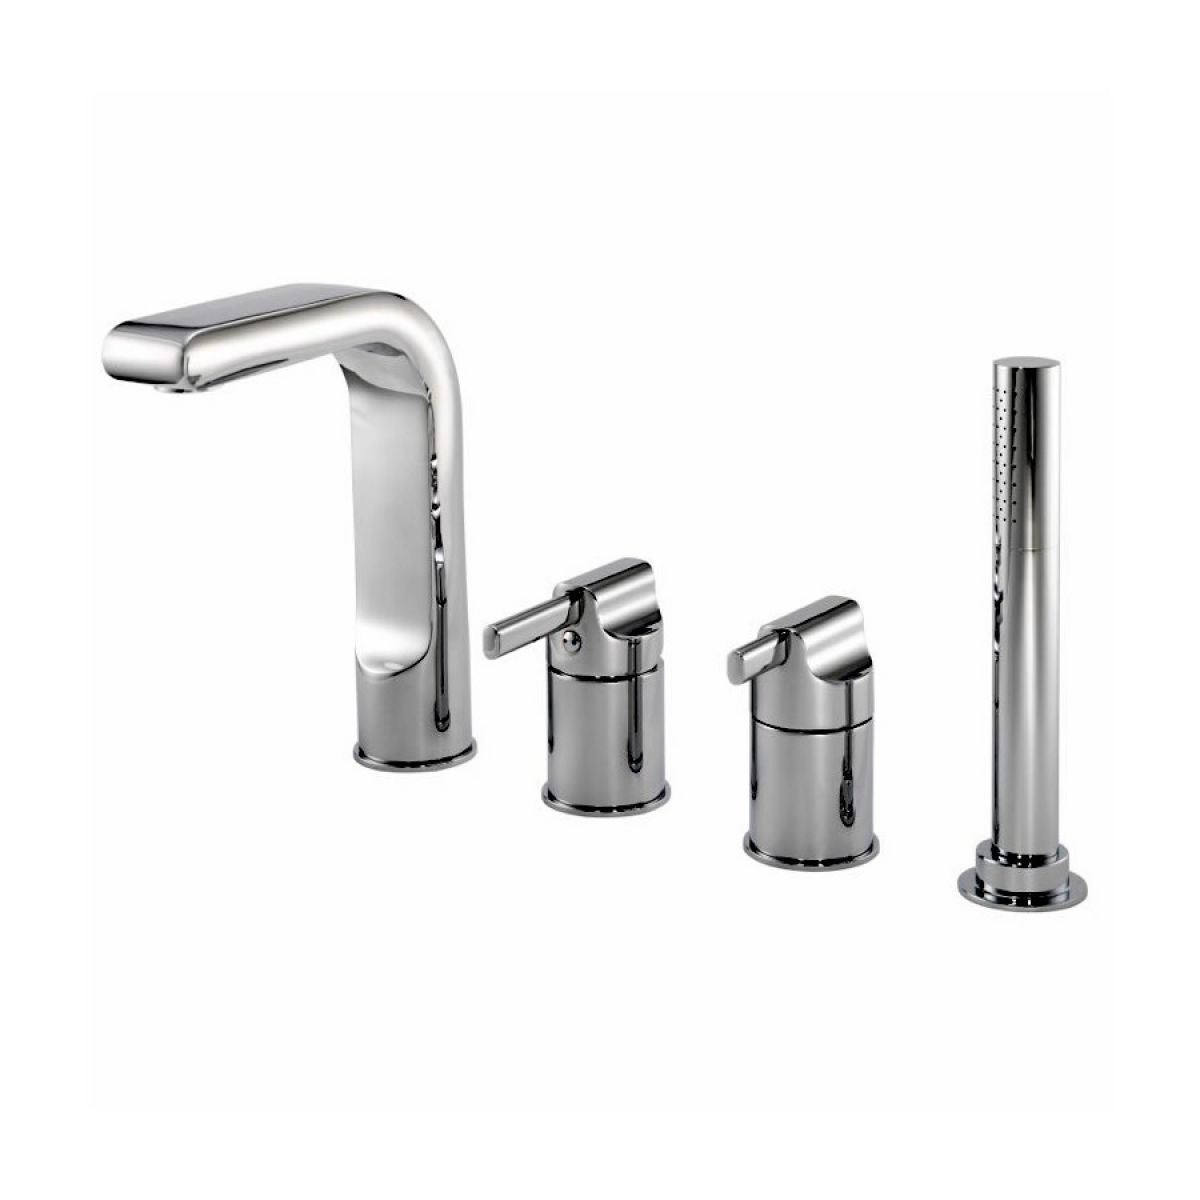 100 bath tap and shower mixers elite bath shower mixer with pegler panacea 4 hole bath shower mixer uk bathrooms